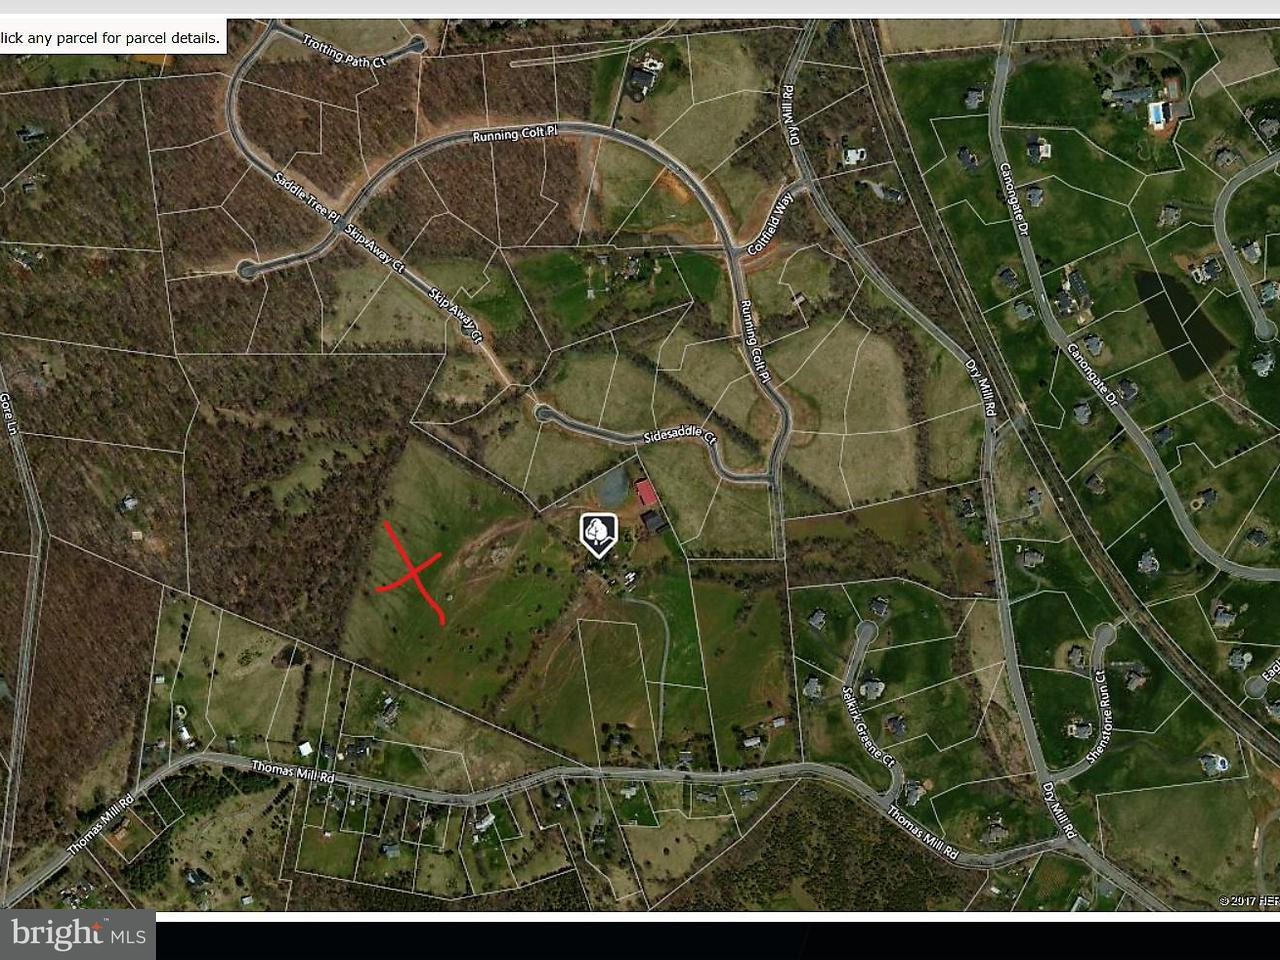 Land for Sale at 40252 THOMAS MILL RD S 40252 THOMAS MILL RD S Leesburg, Virginia 20175 United States